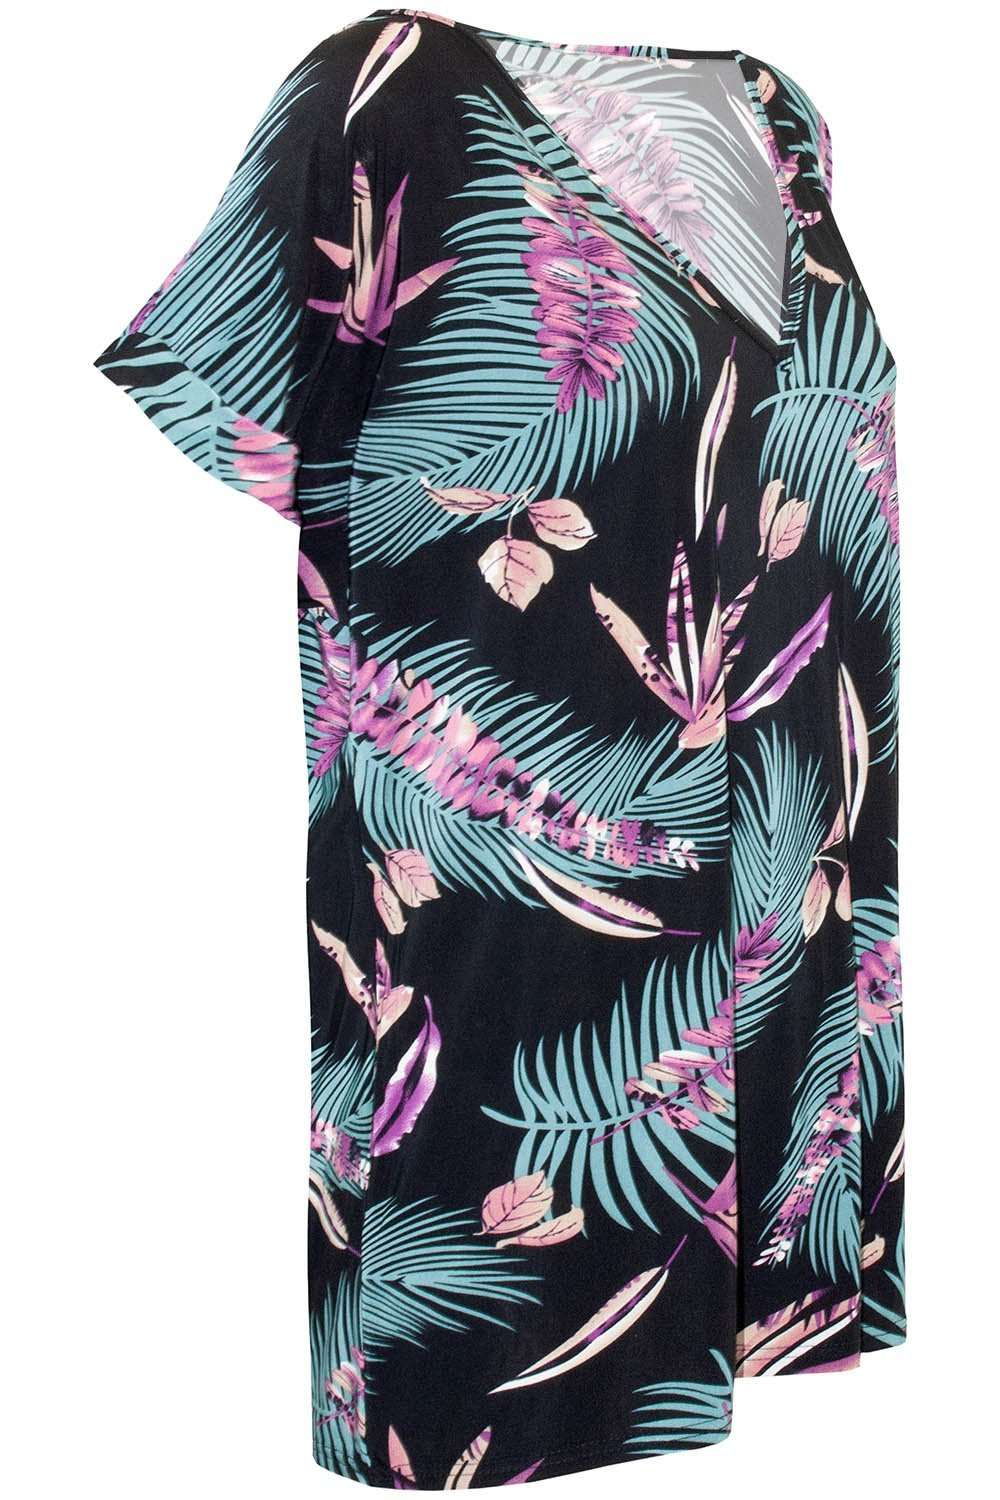 Black Oversized Tropical Print Roll Sleeve Tshirt - bejealous-com